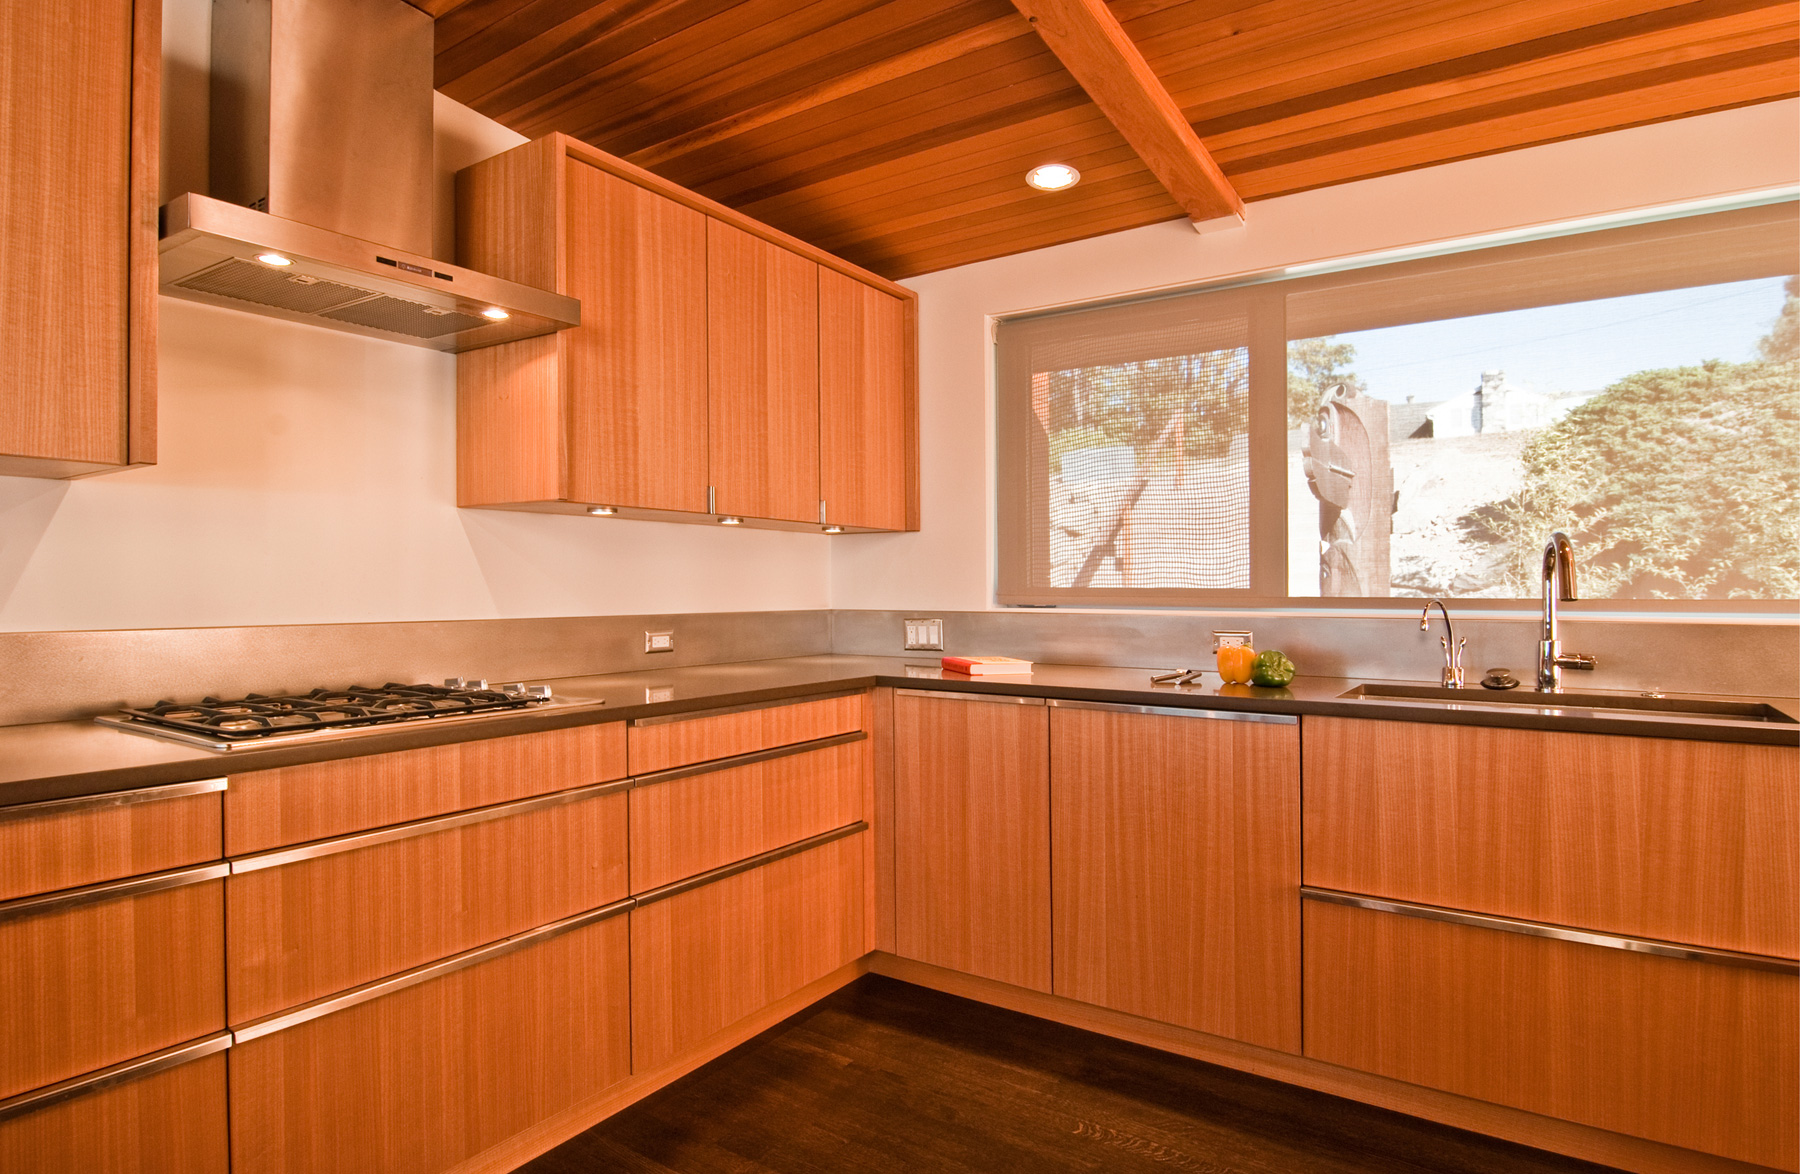 Mid century modern kitchen cabinets recommendation homesfeed for Most modern kitchen cabinets